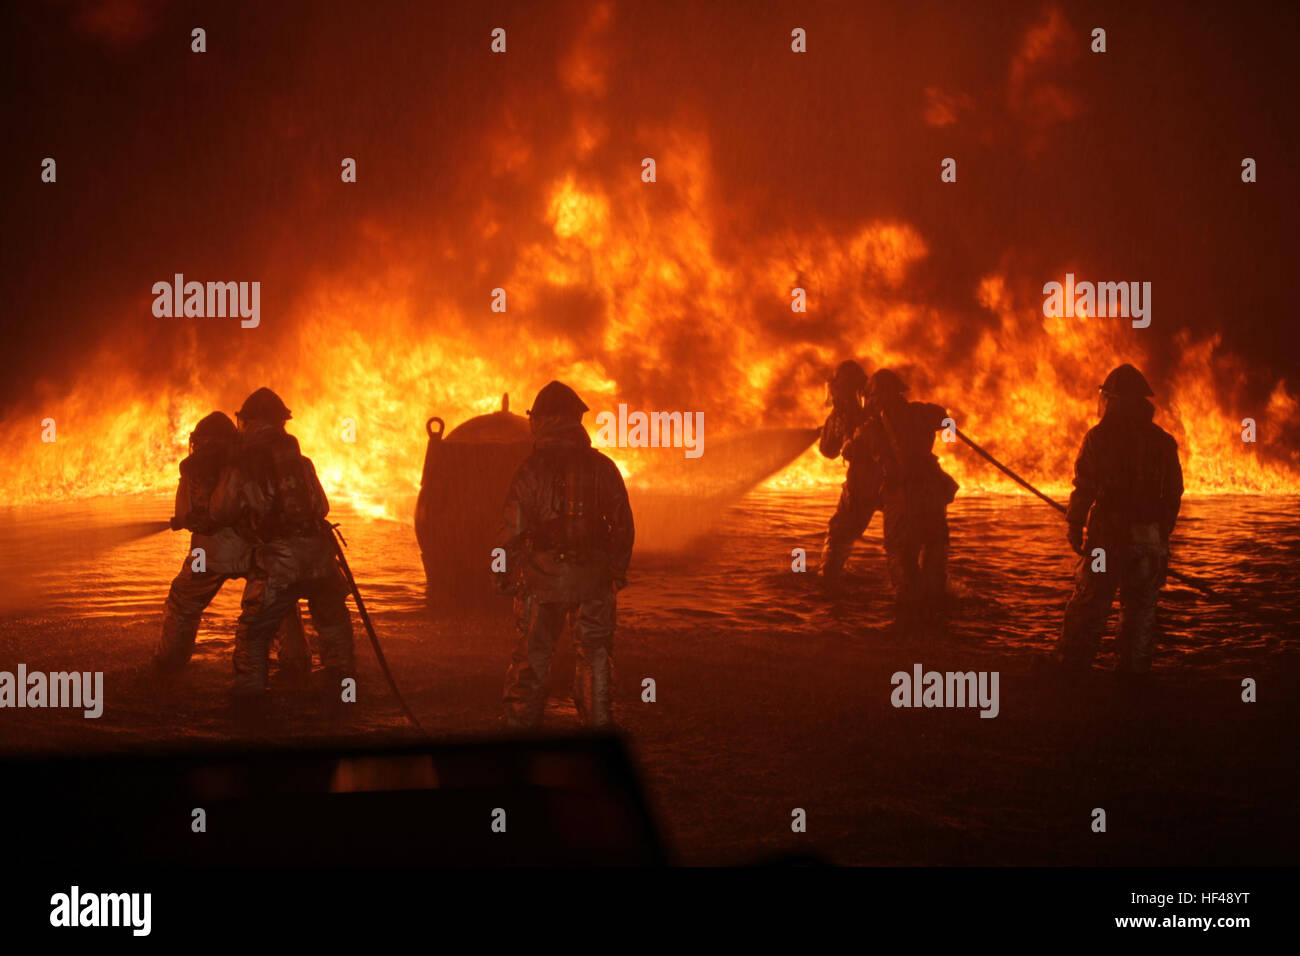 ARFF Marines start spraying the approaching fuel fire during a night fire training exercise at the fuel fire pit, - Stock Image